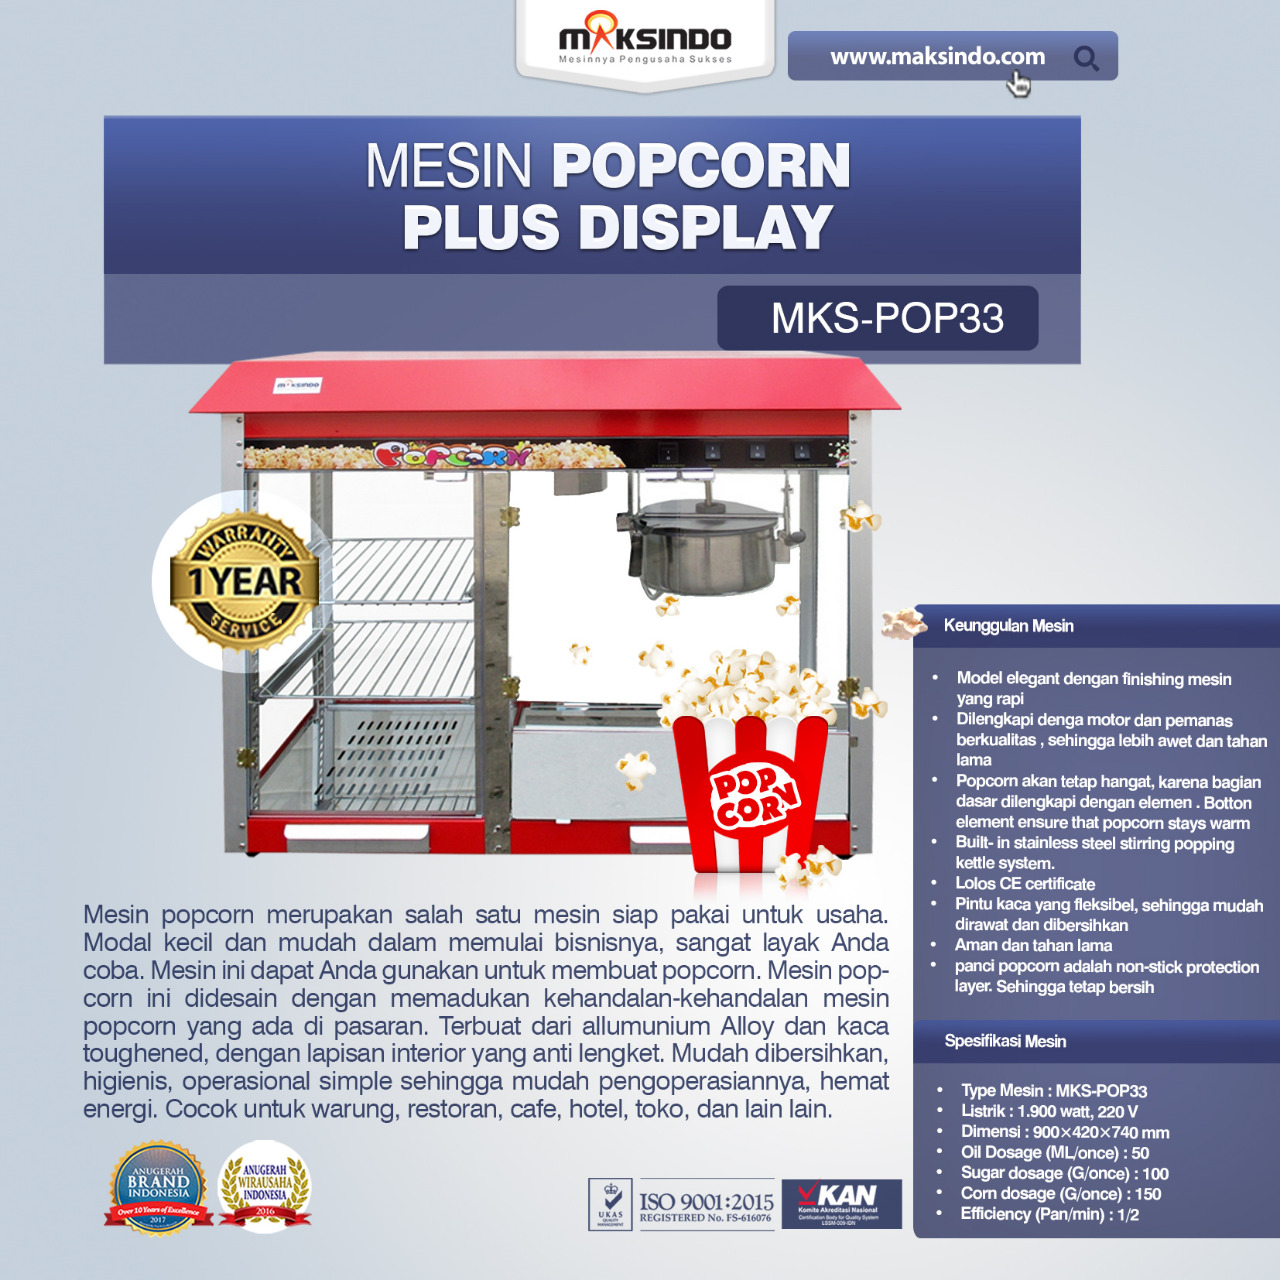 Jual Mesin Popcorn Plus Display (POP33) di Medan